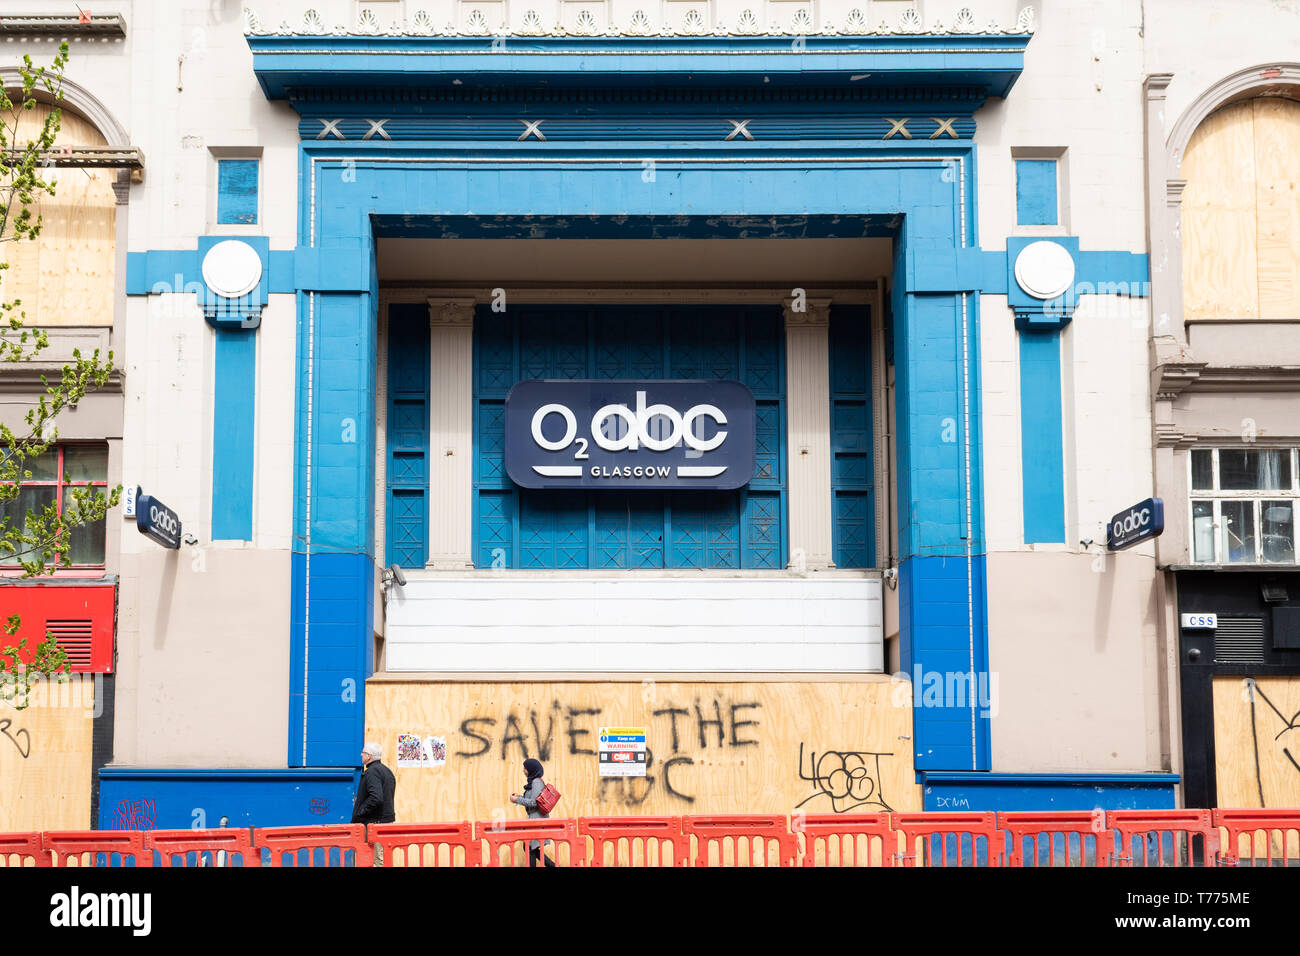 O2 ABC Sauchiehall Street, Glasgow music venue - boarded up after being severely damaged by fire in 2018 - Stock Image